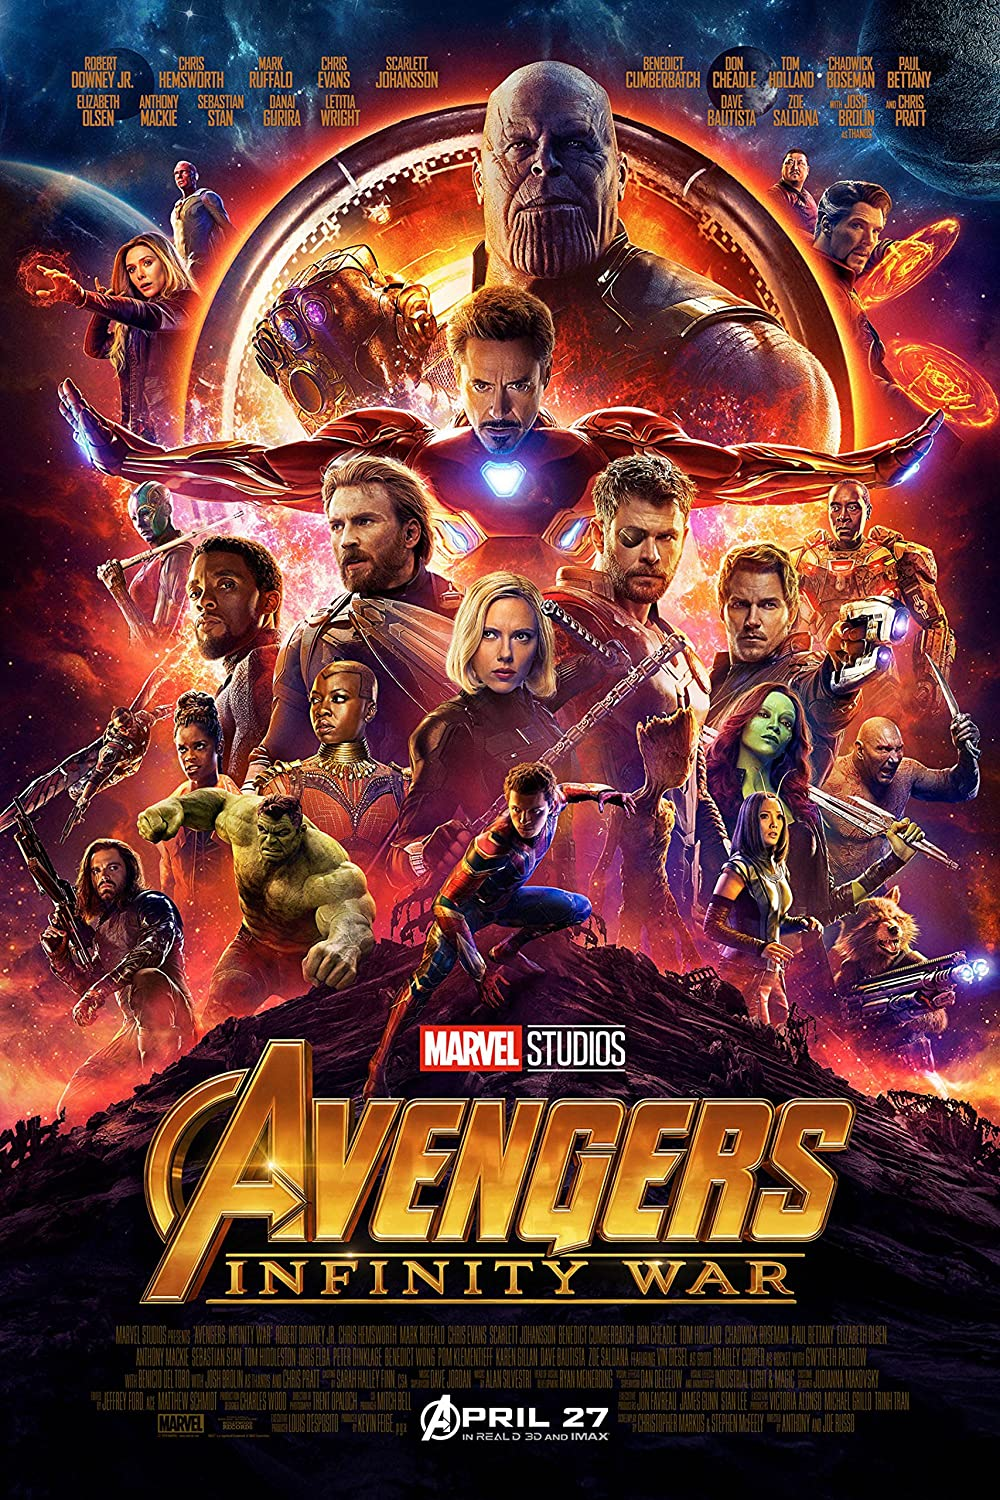 Amazon.com: The Avengers: Infinity War Movie POSTER (2018) Sci-fi ...